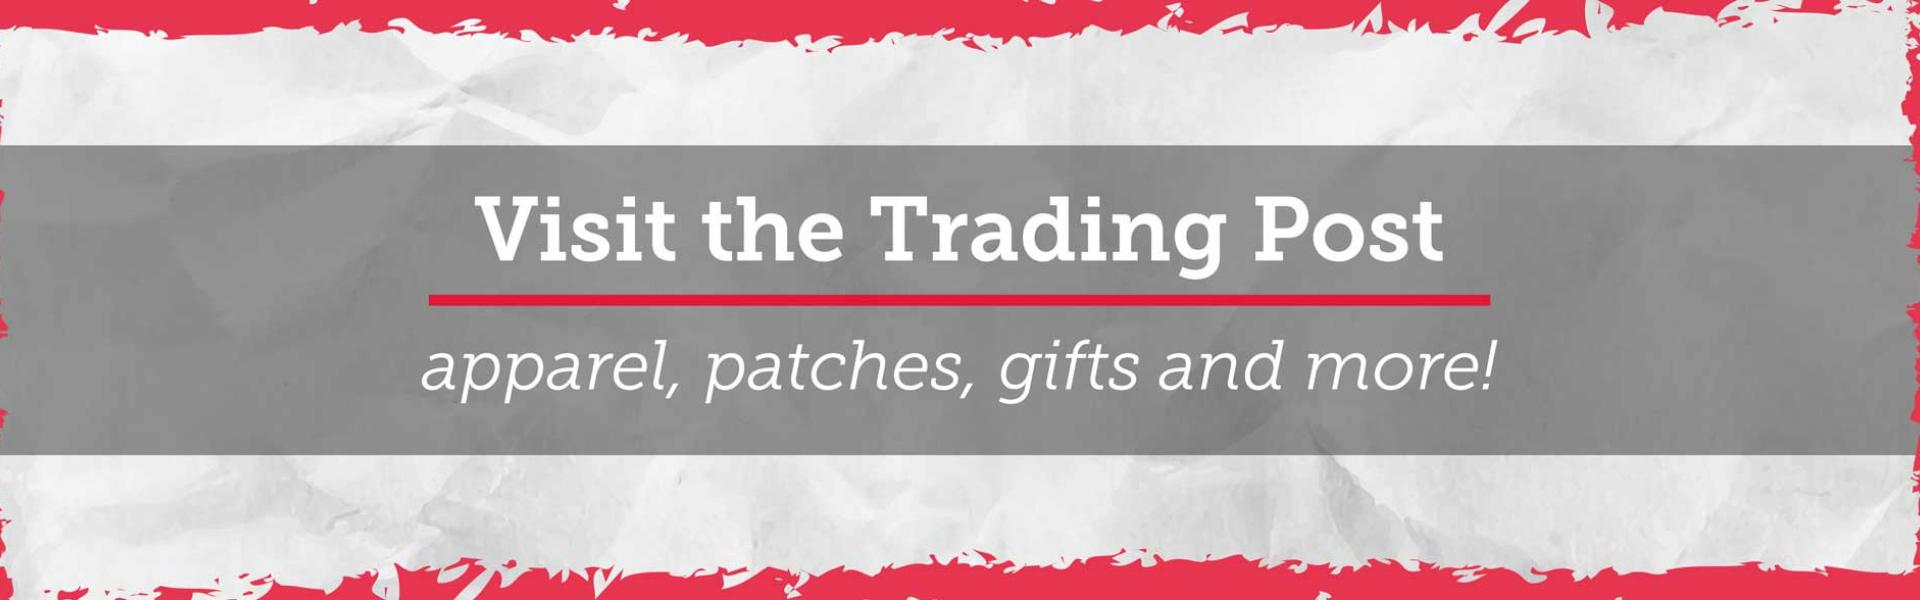 Visit the Trading Post! apparel, patches, gifts, and more!